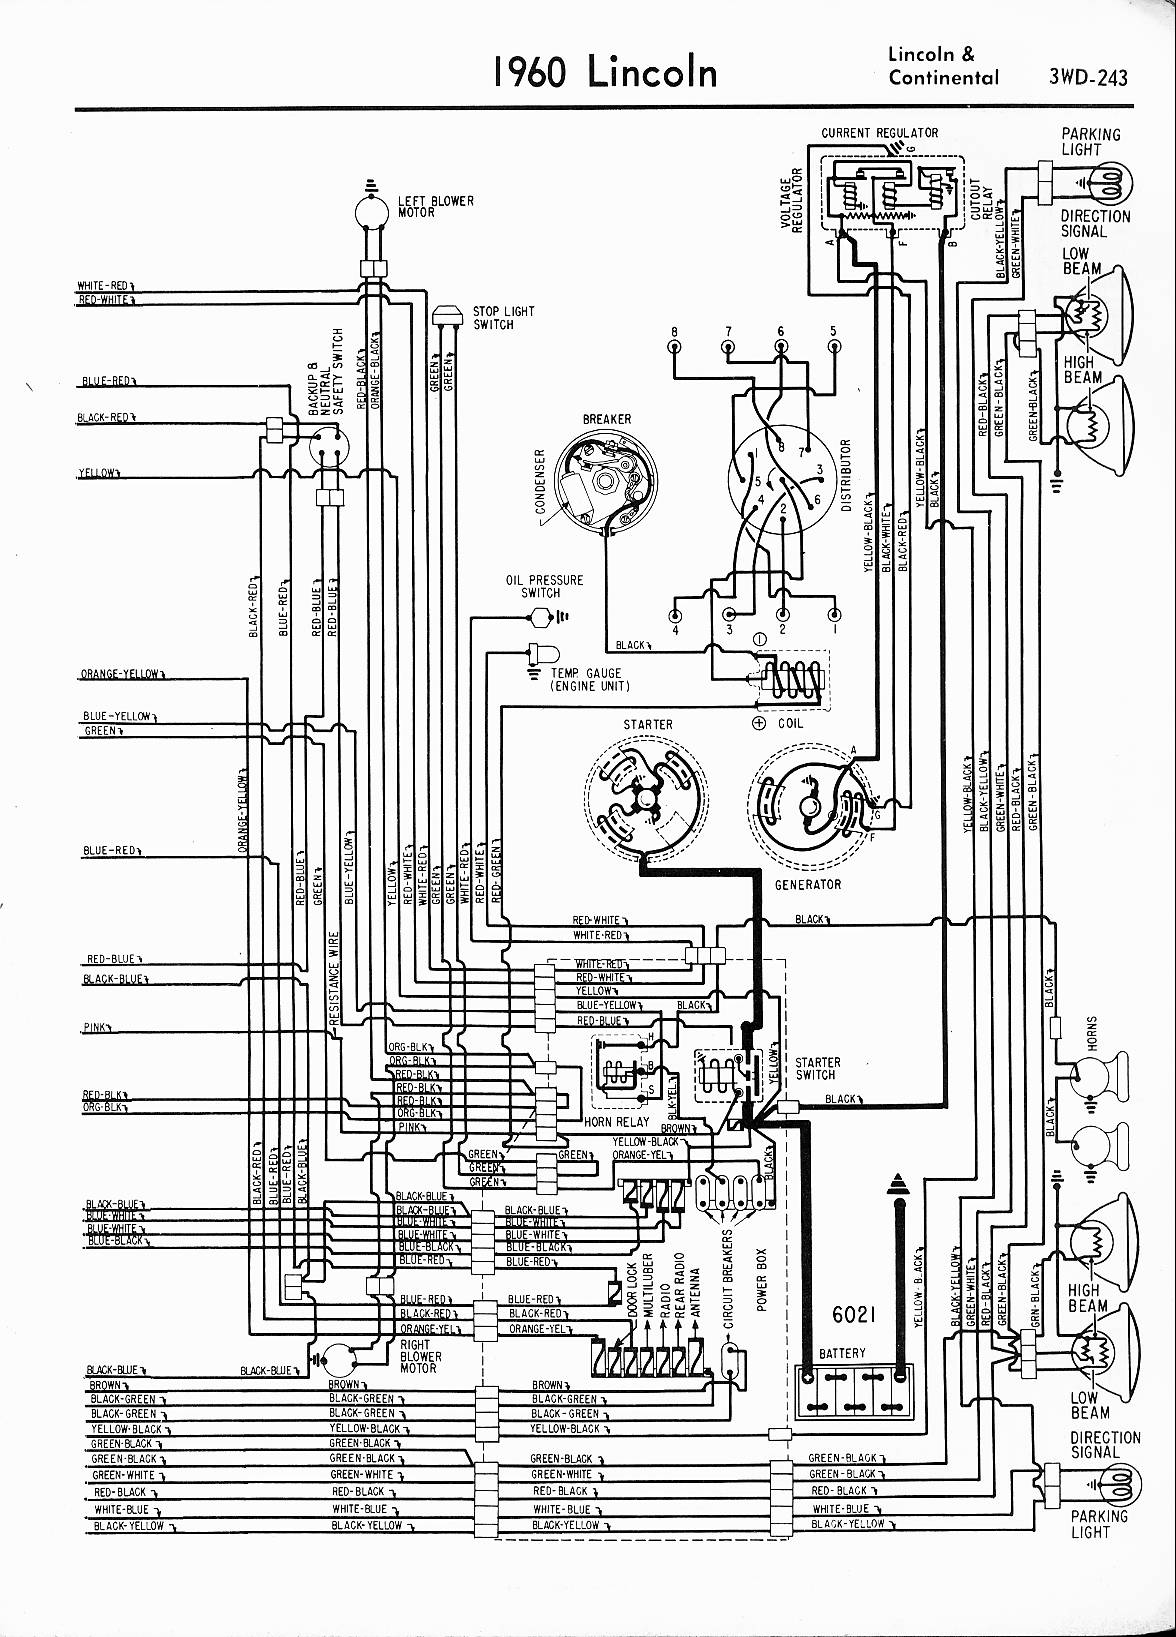 1960 lincoln wiring diagram schematics wiring diagrams \u2022 acura tl wiring-diagram lincoln wiring diagrams 1957 1965 rh oldcarmanualproject com 1999 lincoln navigator engine diagram 1998 lincoln navigator wiring diagram